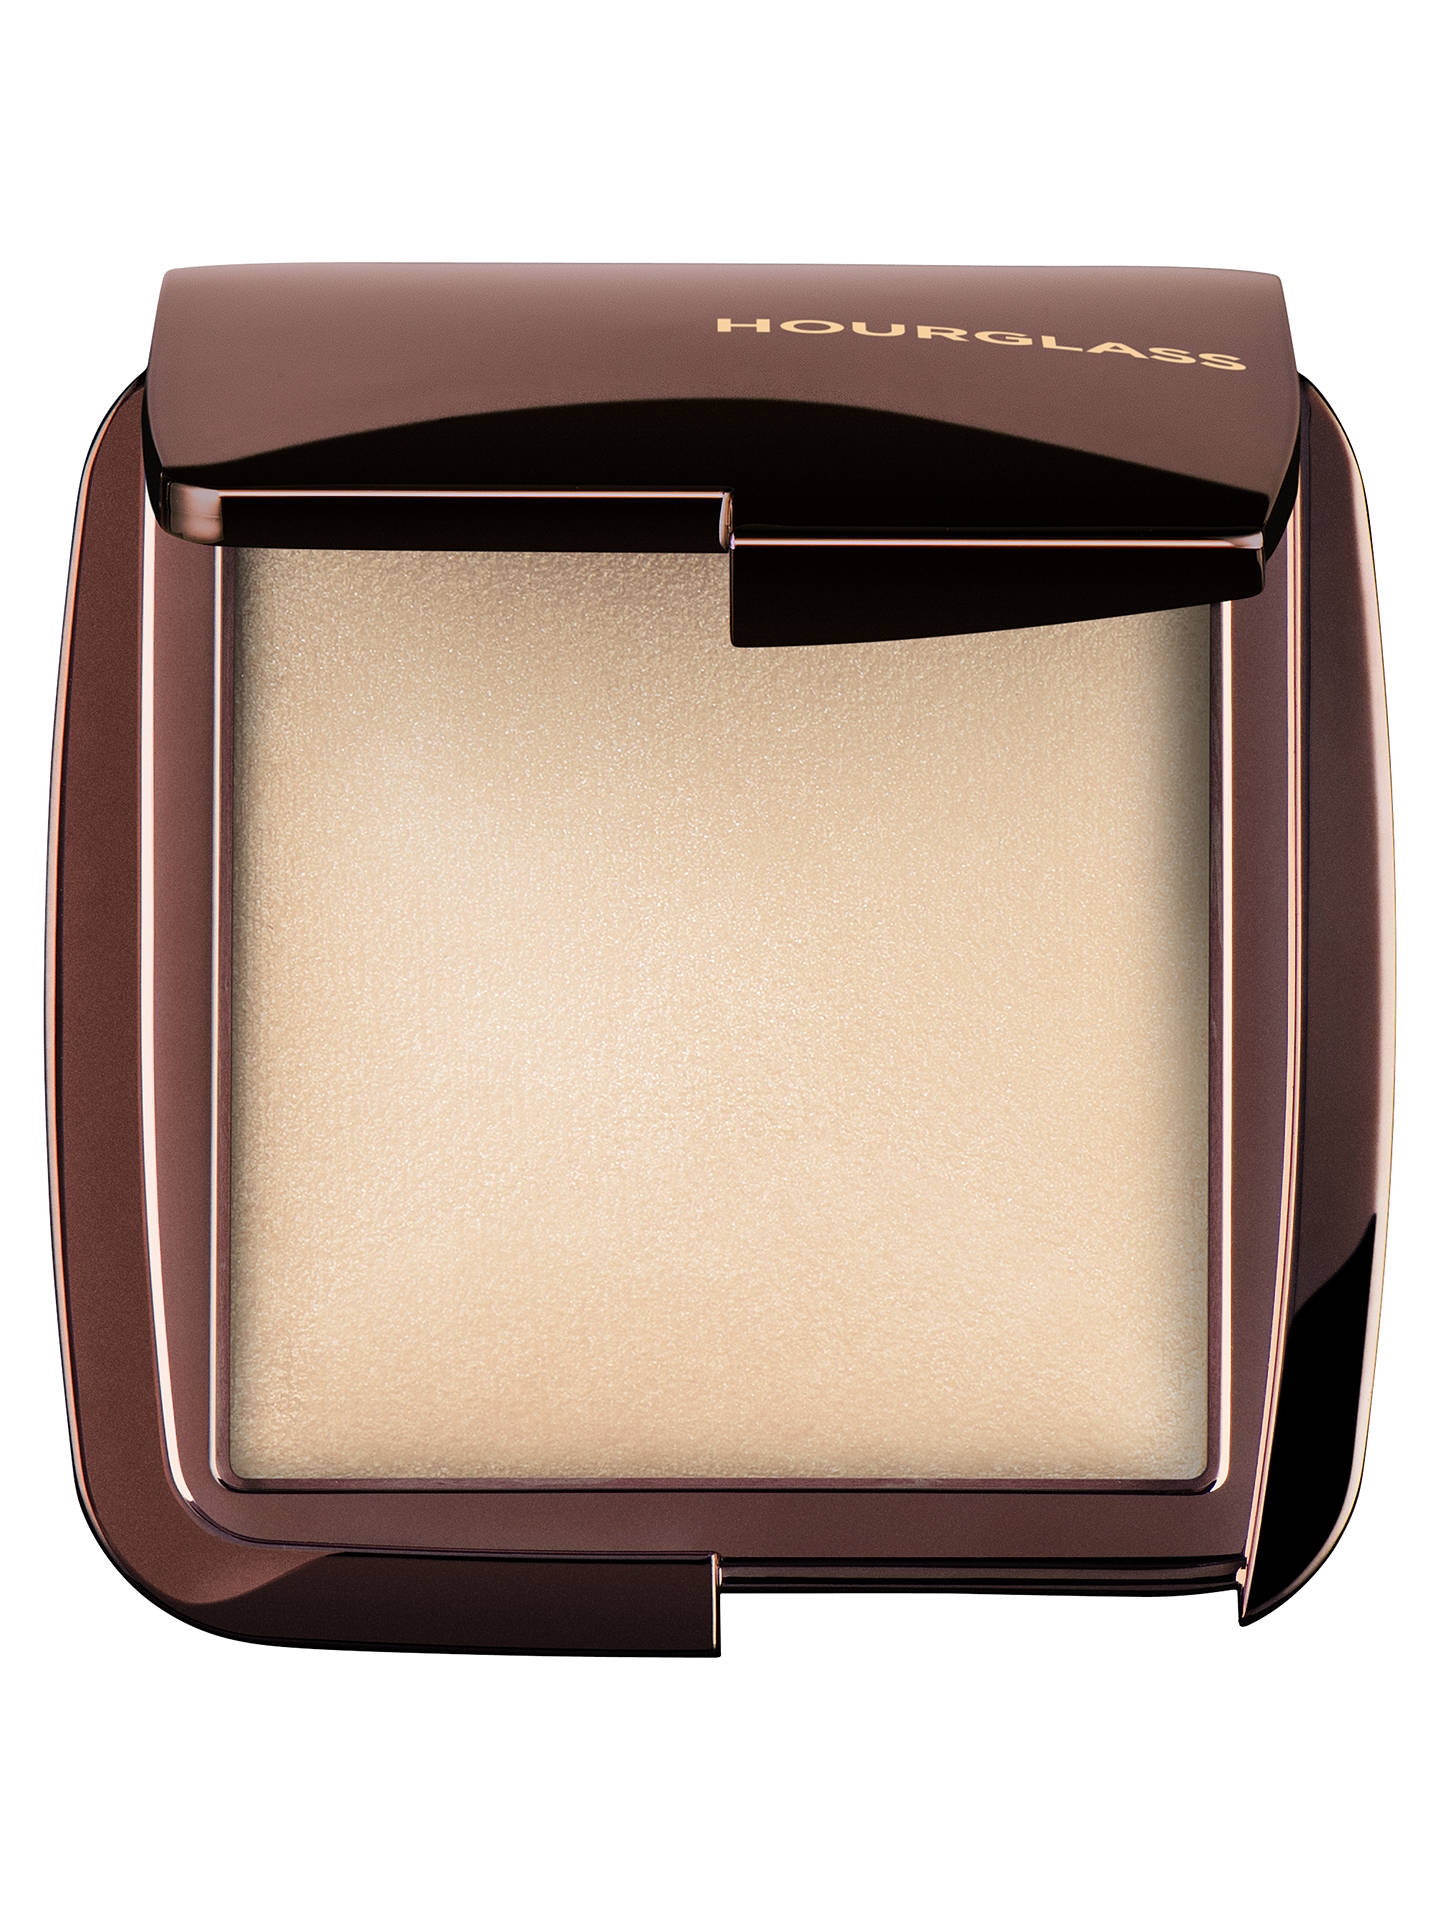 Buy Hourglass Ambient Light Powder, Diffused, Warm Pale Yellow Online at johnlewis.com